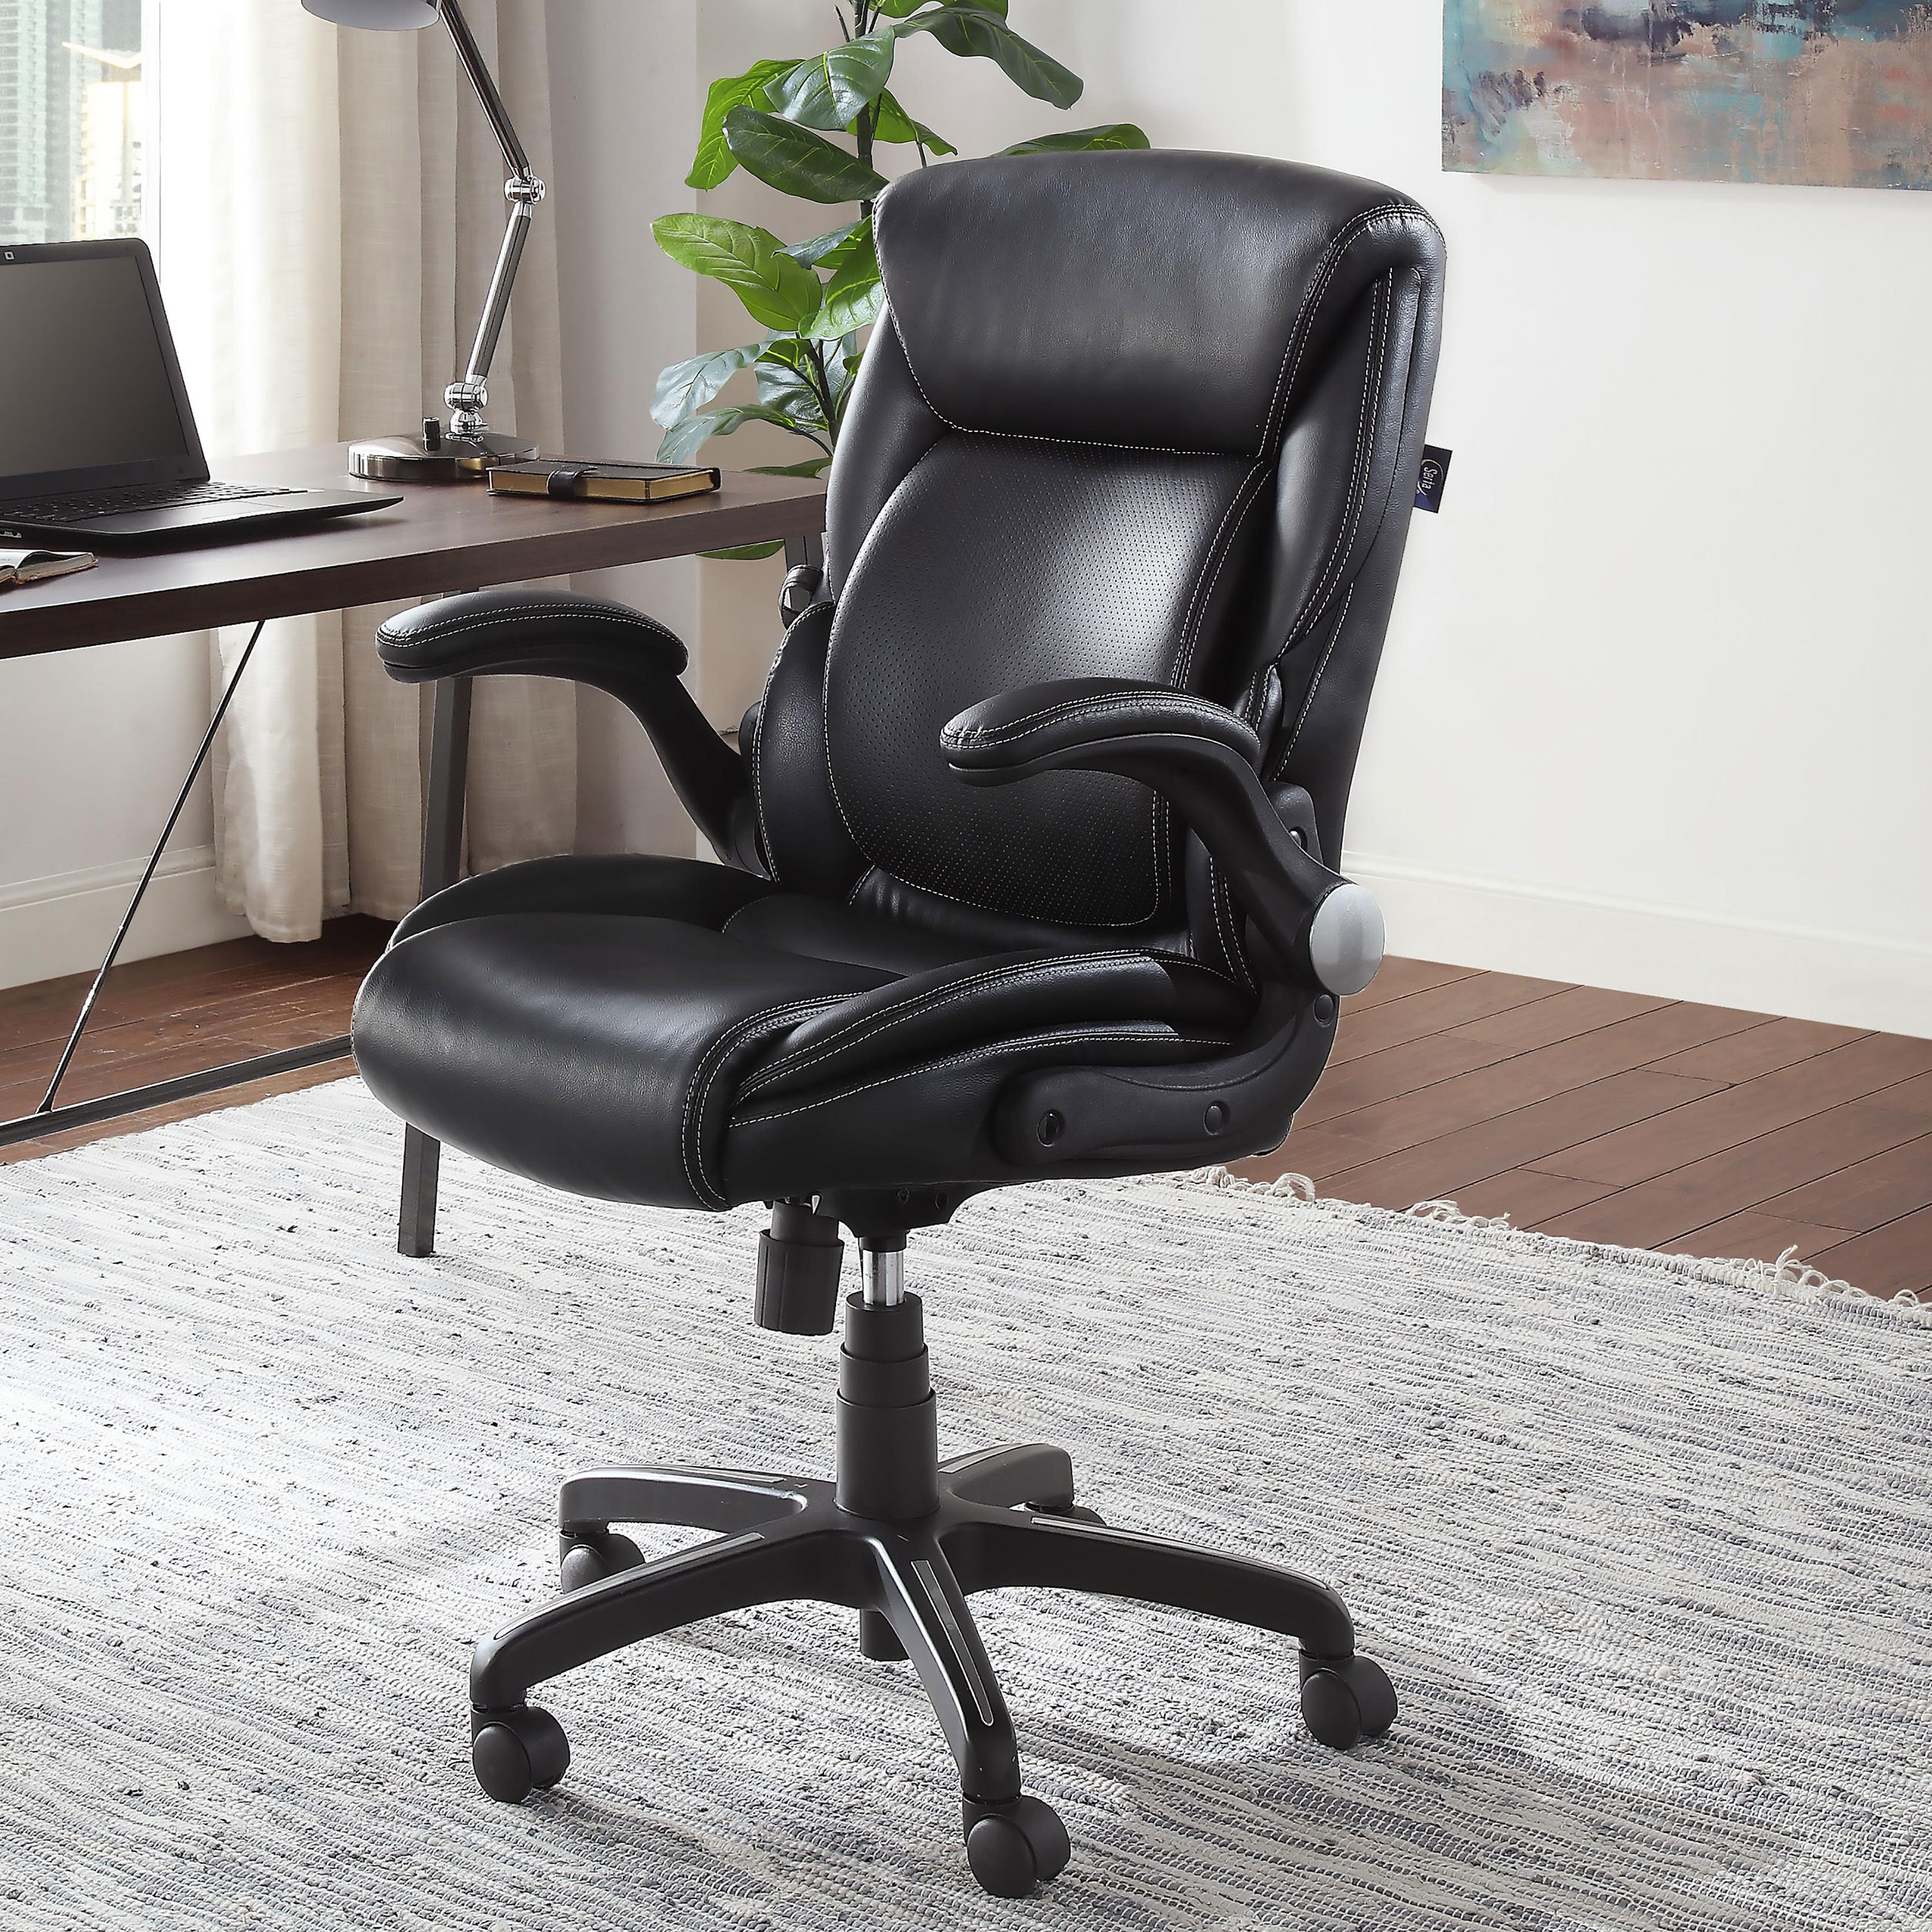 The office chair in the color black